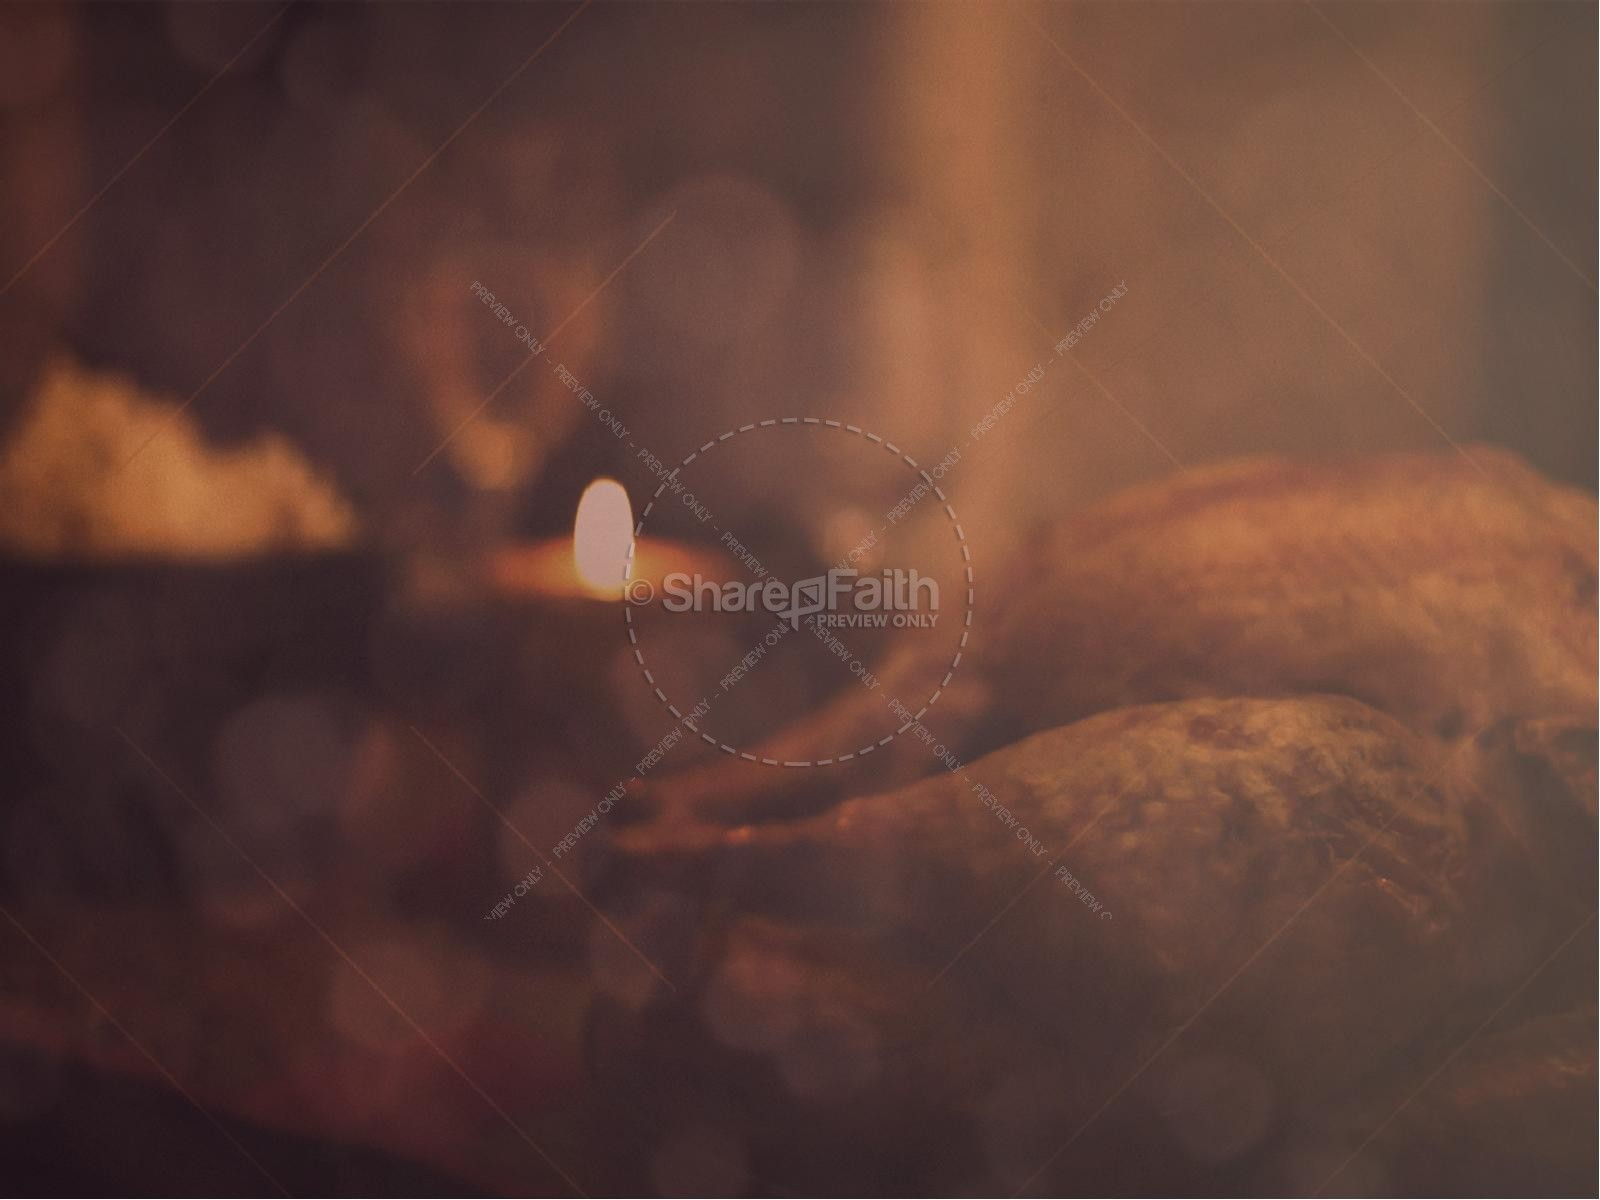 Falling Leaves Live Wallpaper Hd Happy Thanksgiving Holiday Religious Powerpoint